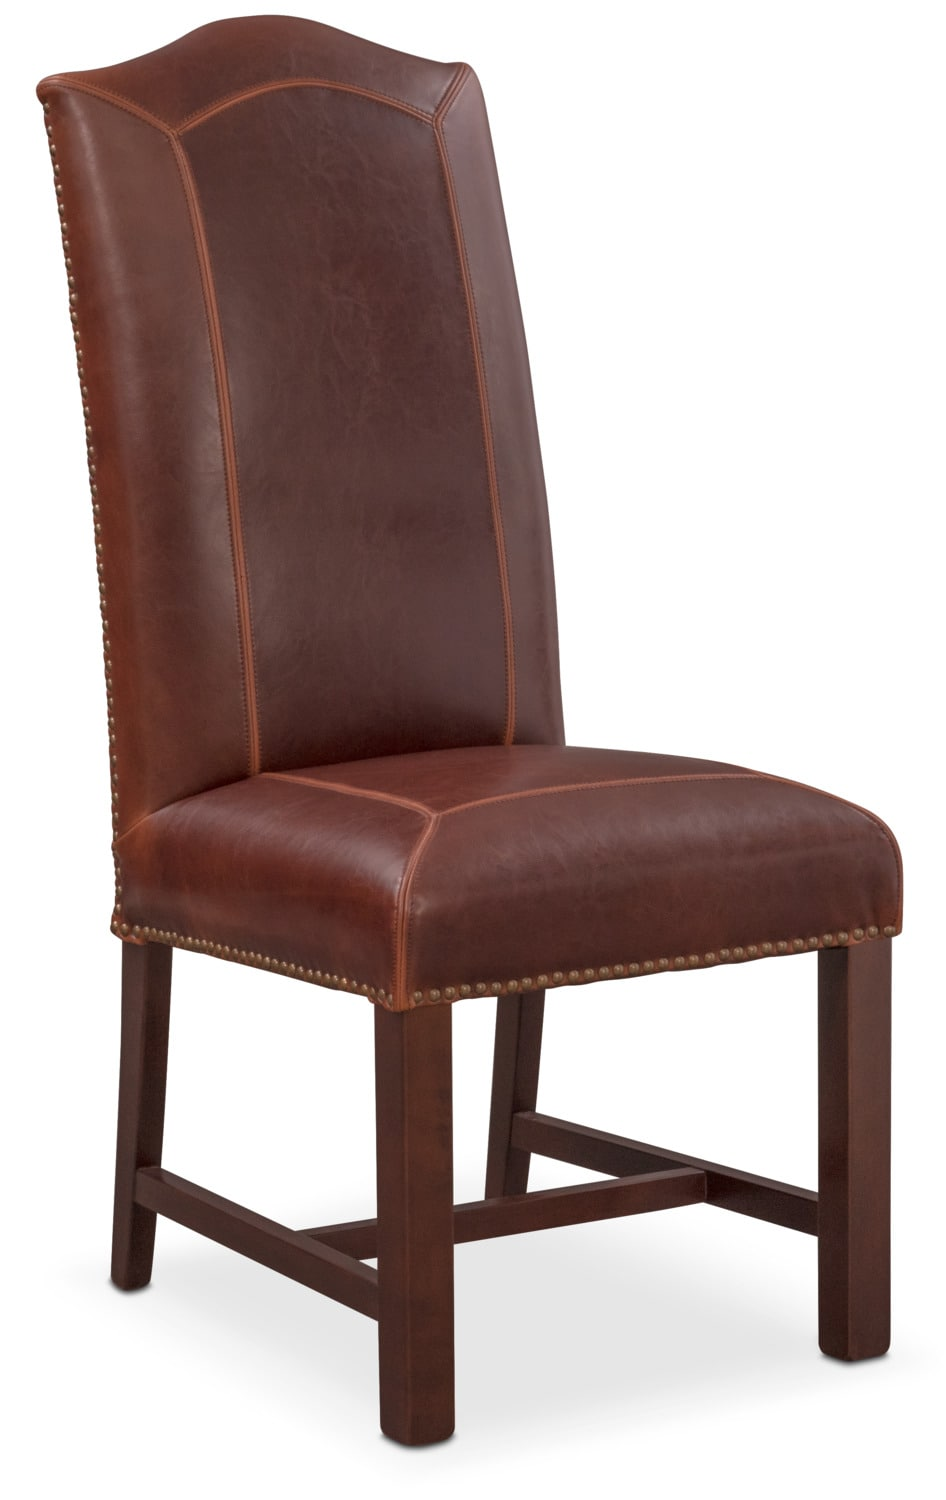 Cloister Side Chair - Brown